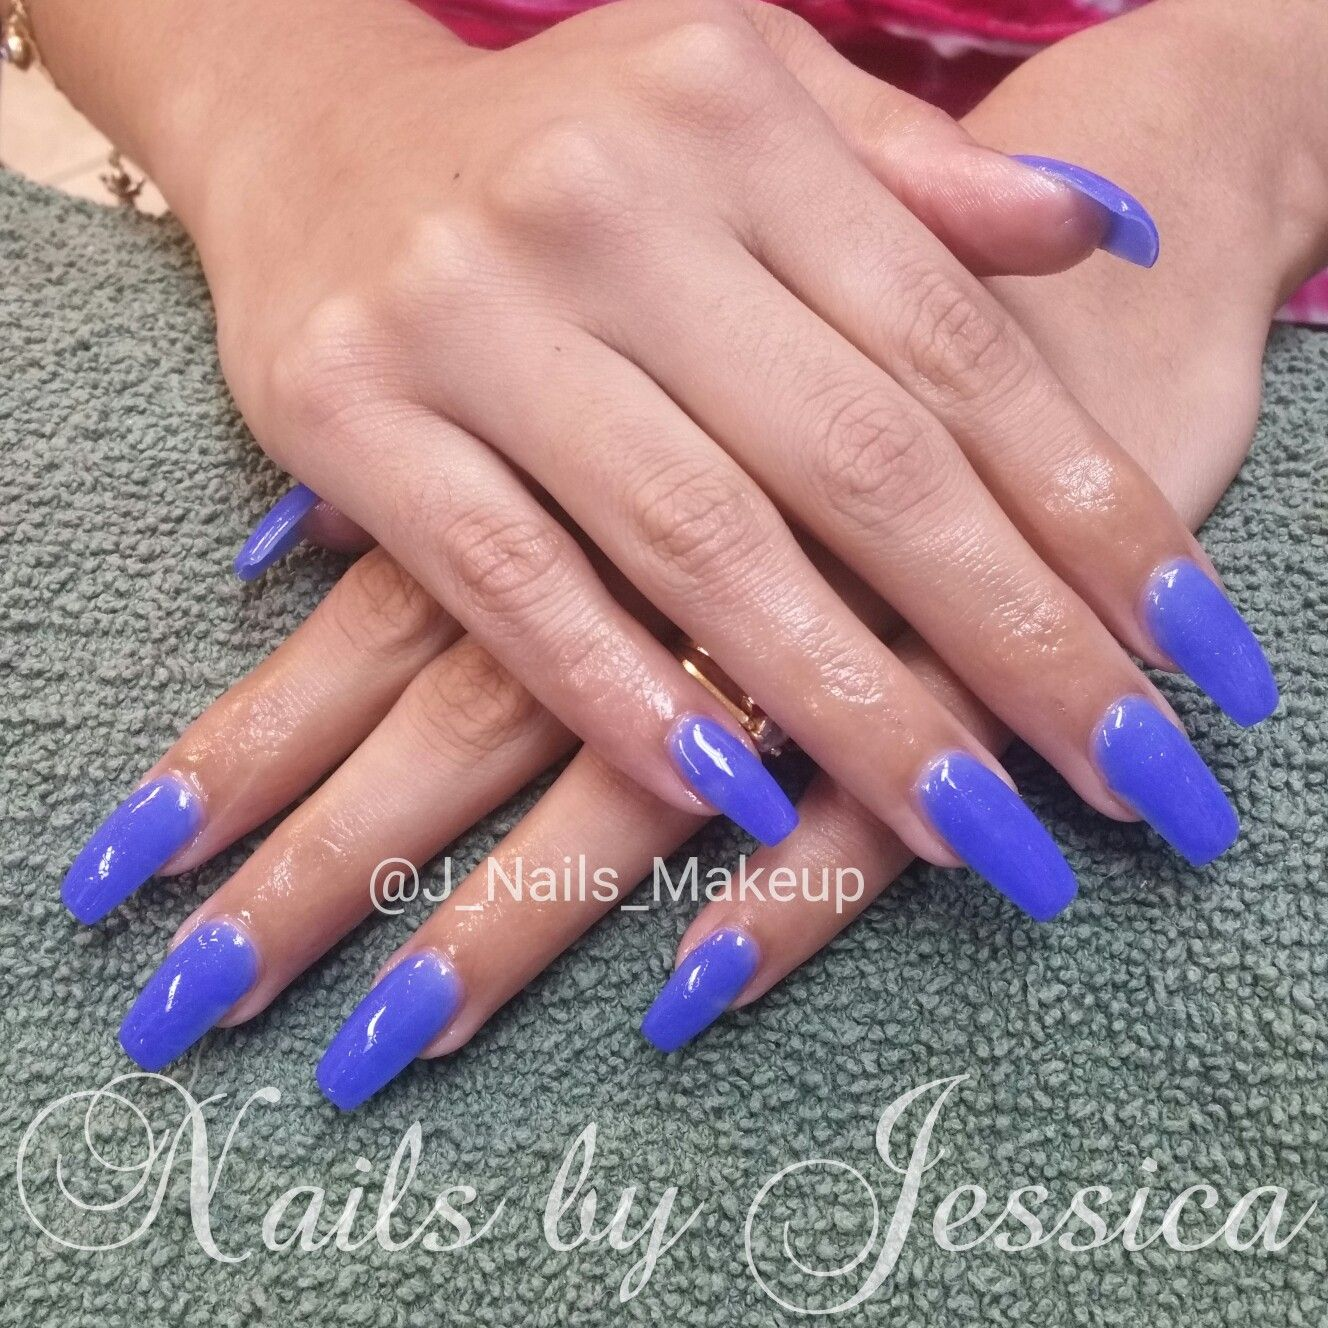 Nexgen dip powder nails. Blue nails | Nails By Yours Truly ...